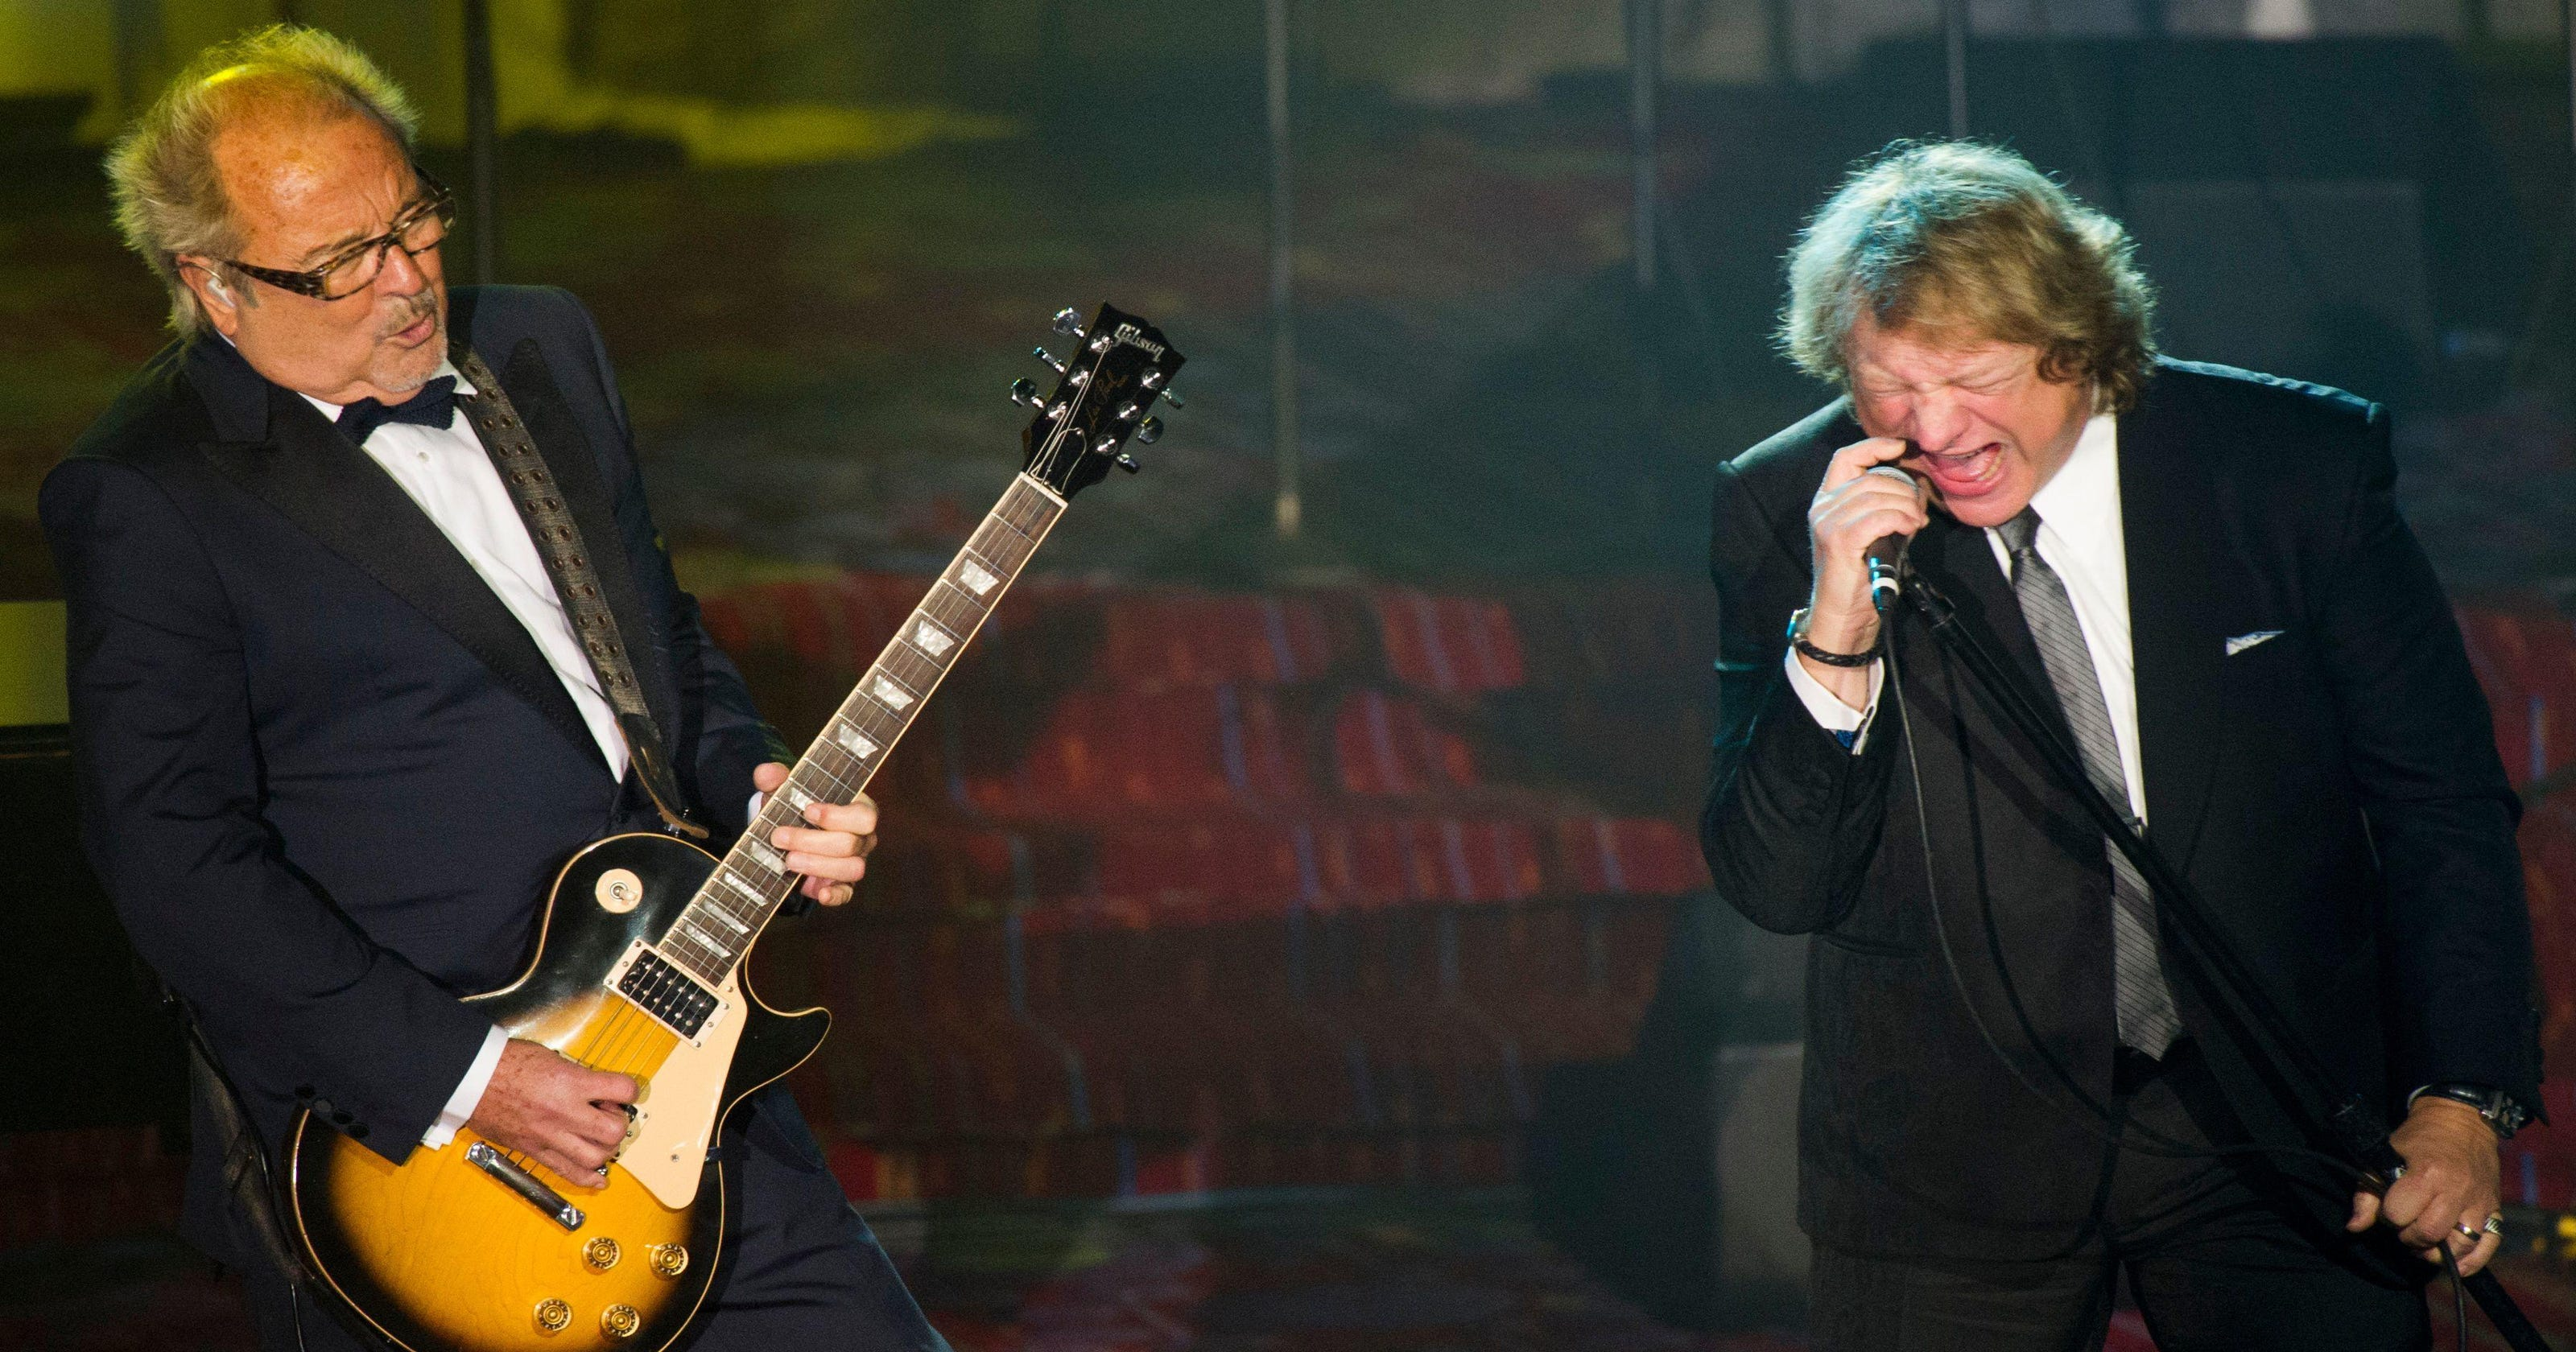 Foreigner Co-founders Lou Gramm, Mick Jones On TV Tonight